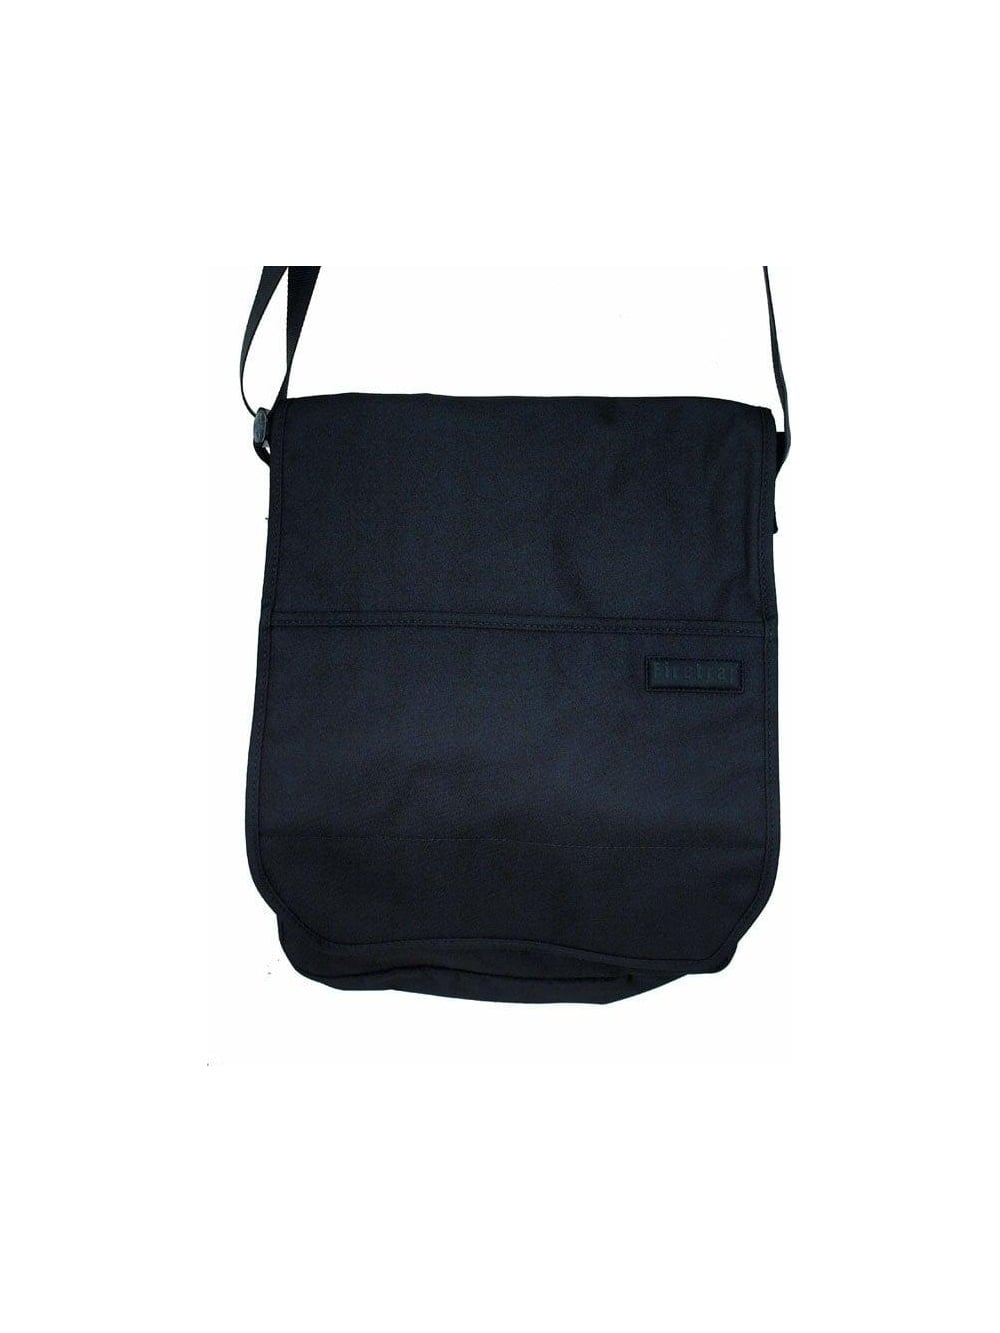 outlet outstanding features save up to 80% Speck Shoulder Bag - Black